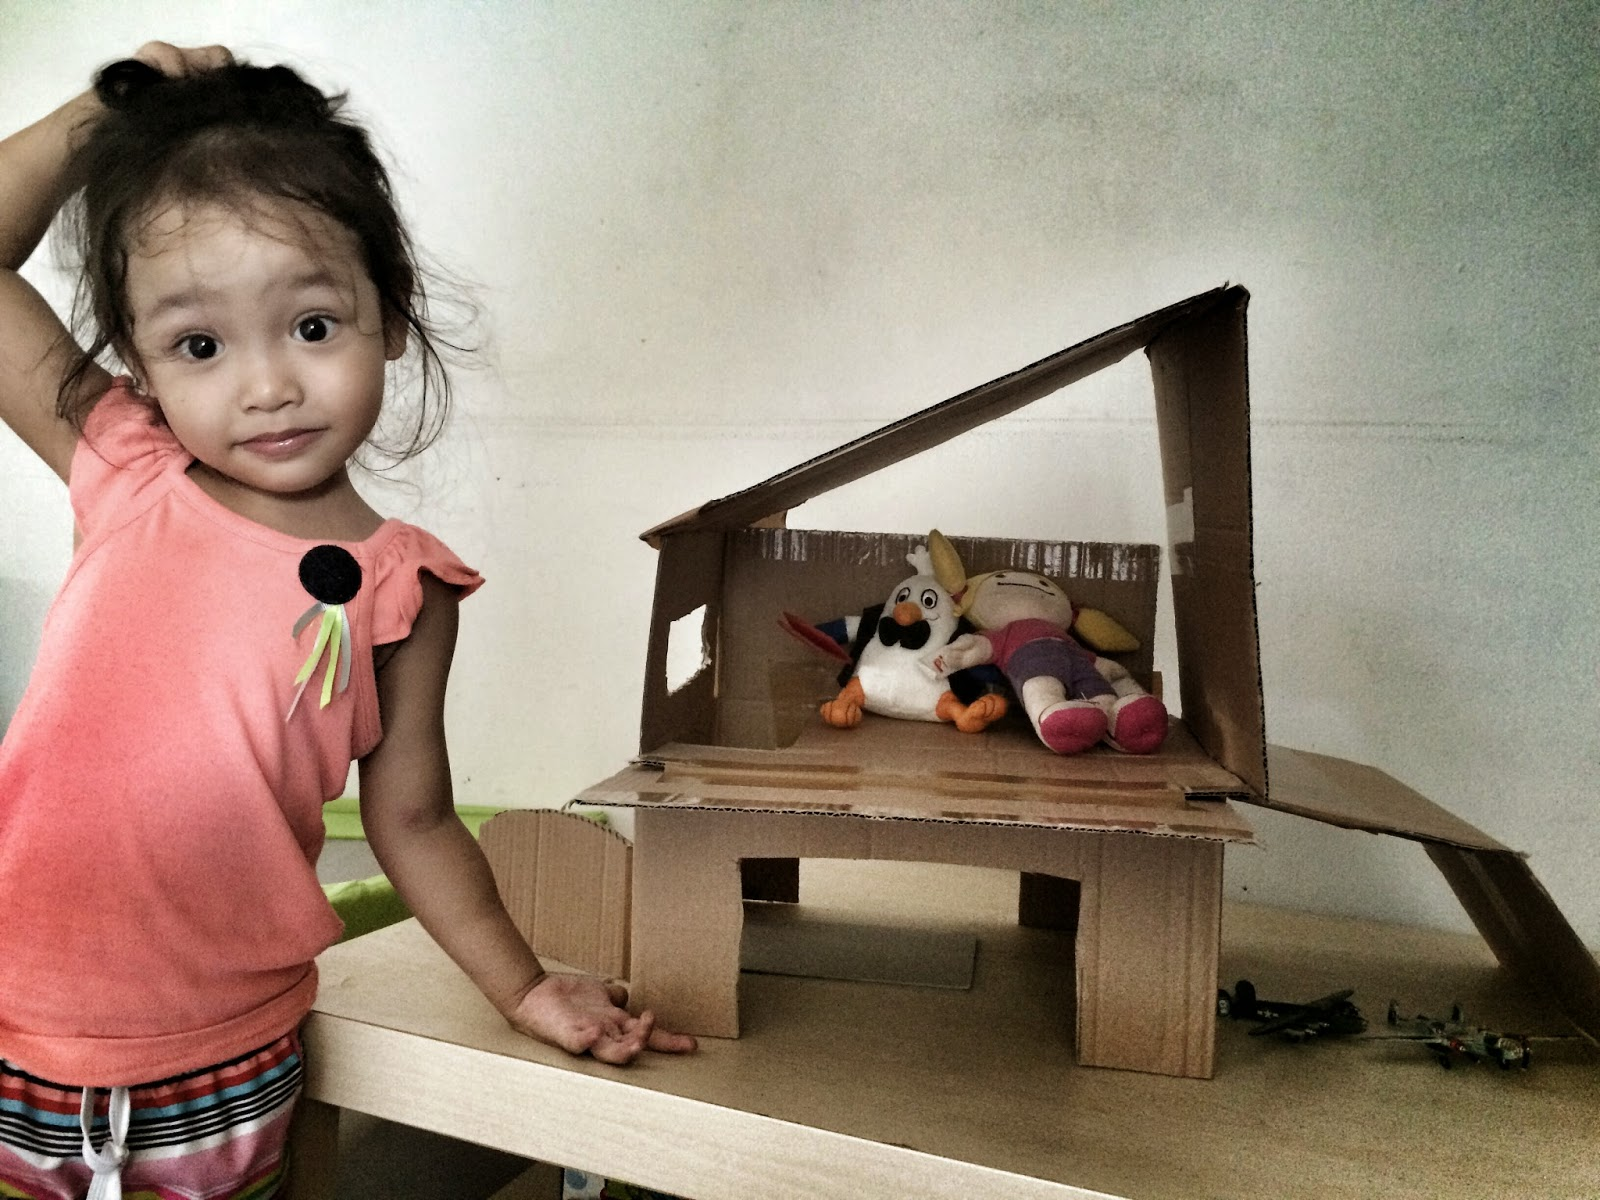 The Accidental Doll House Project